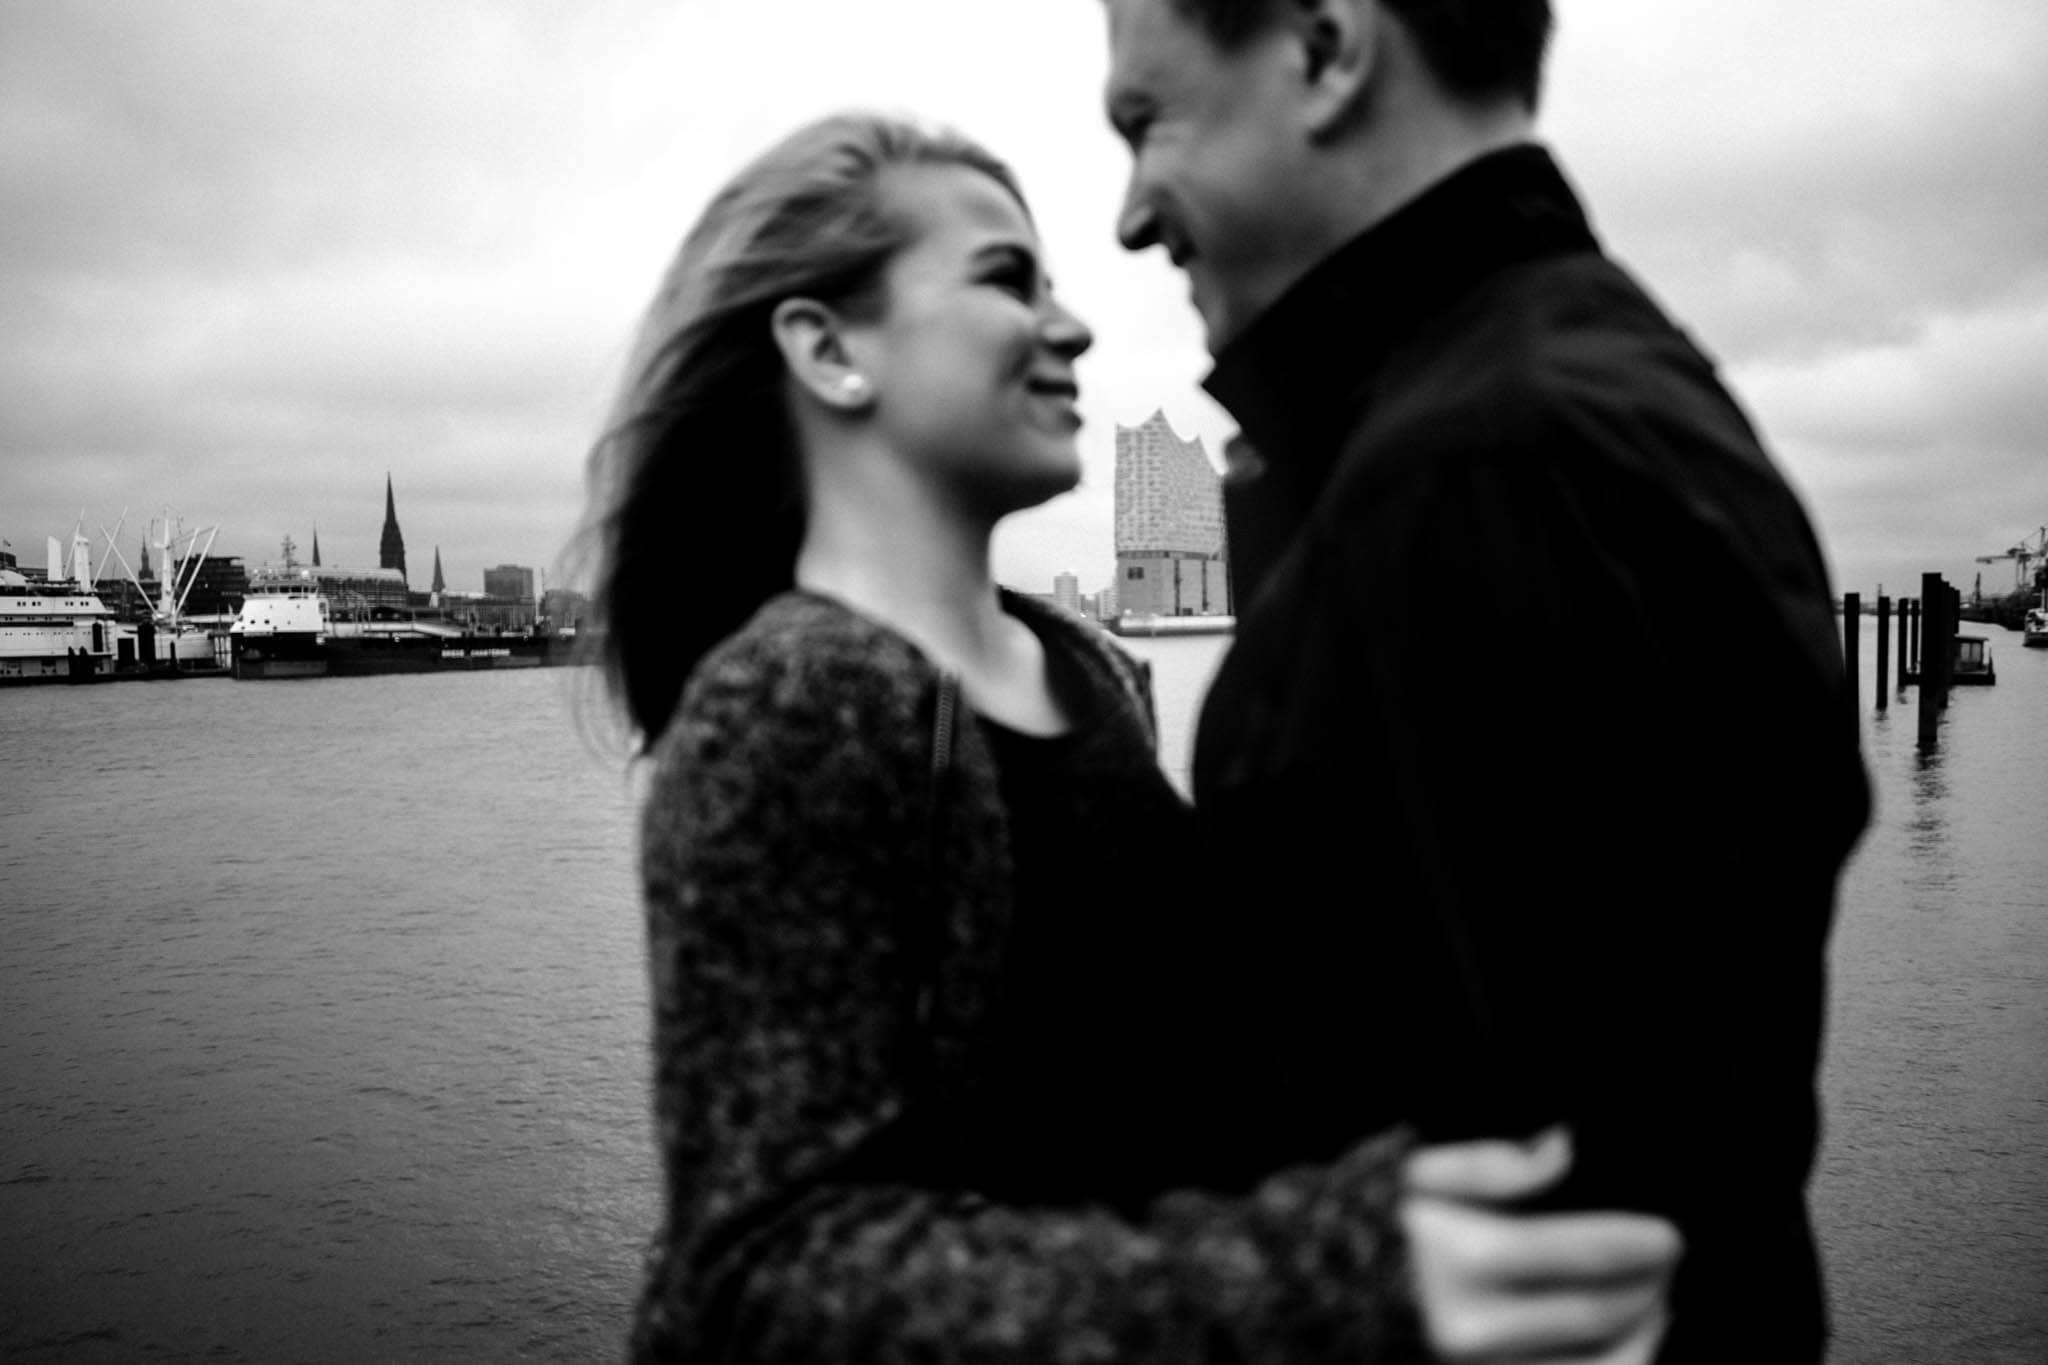 Engagementshooting, Hochzeitsfieber by Photo-Schomburg, Pärchenshoot, Hamburg, Elbe, Hamburger Hafen, Hochzeitsfotograf, Wedding, Coupleshoot, Hochzeitsfotografie-17